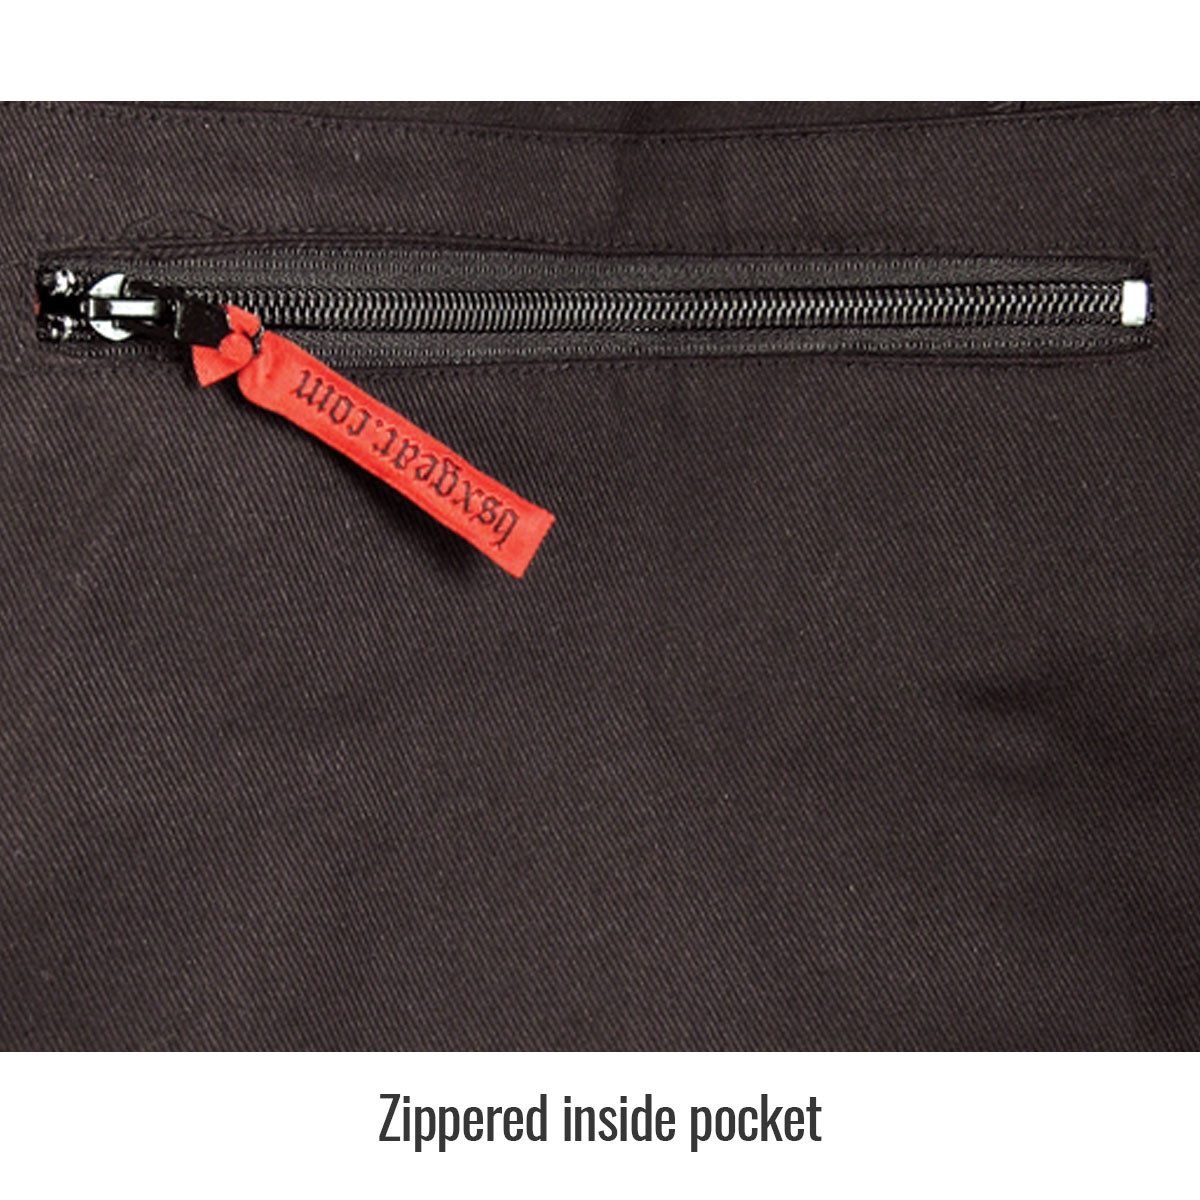 B9C_Zippered-pocket.jpg